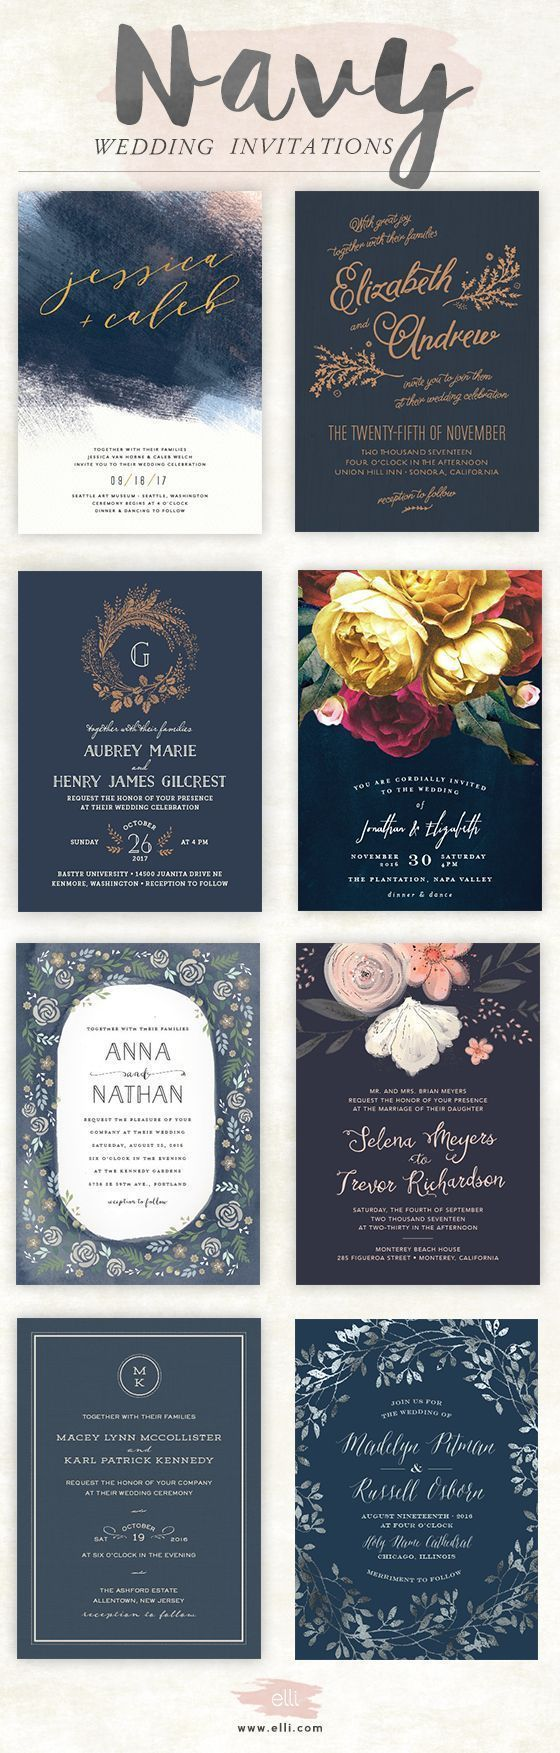 not on the high street winter wedding invitations%0A Navy wedding invitations from Elli com  Order a free sample